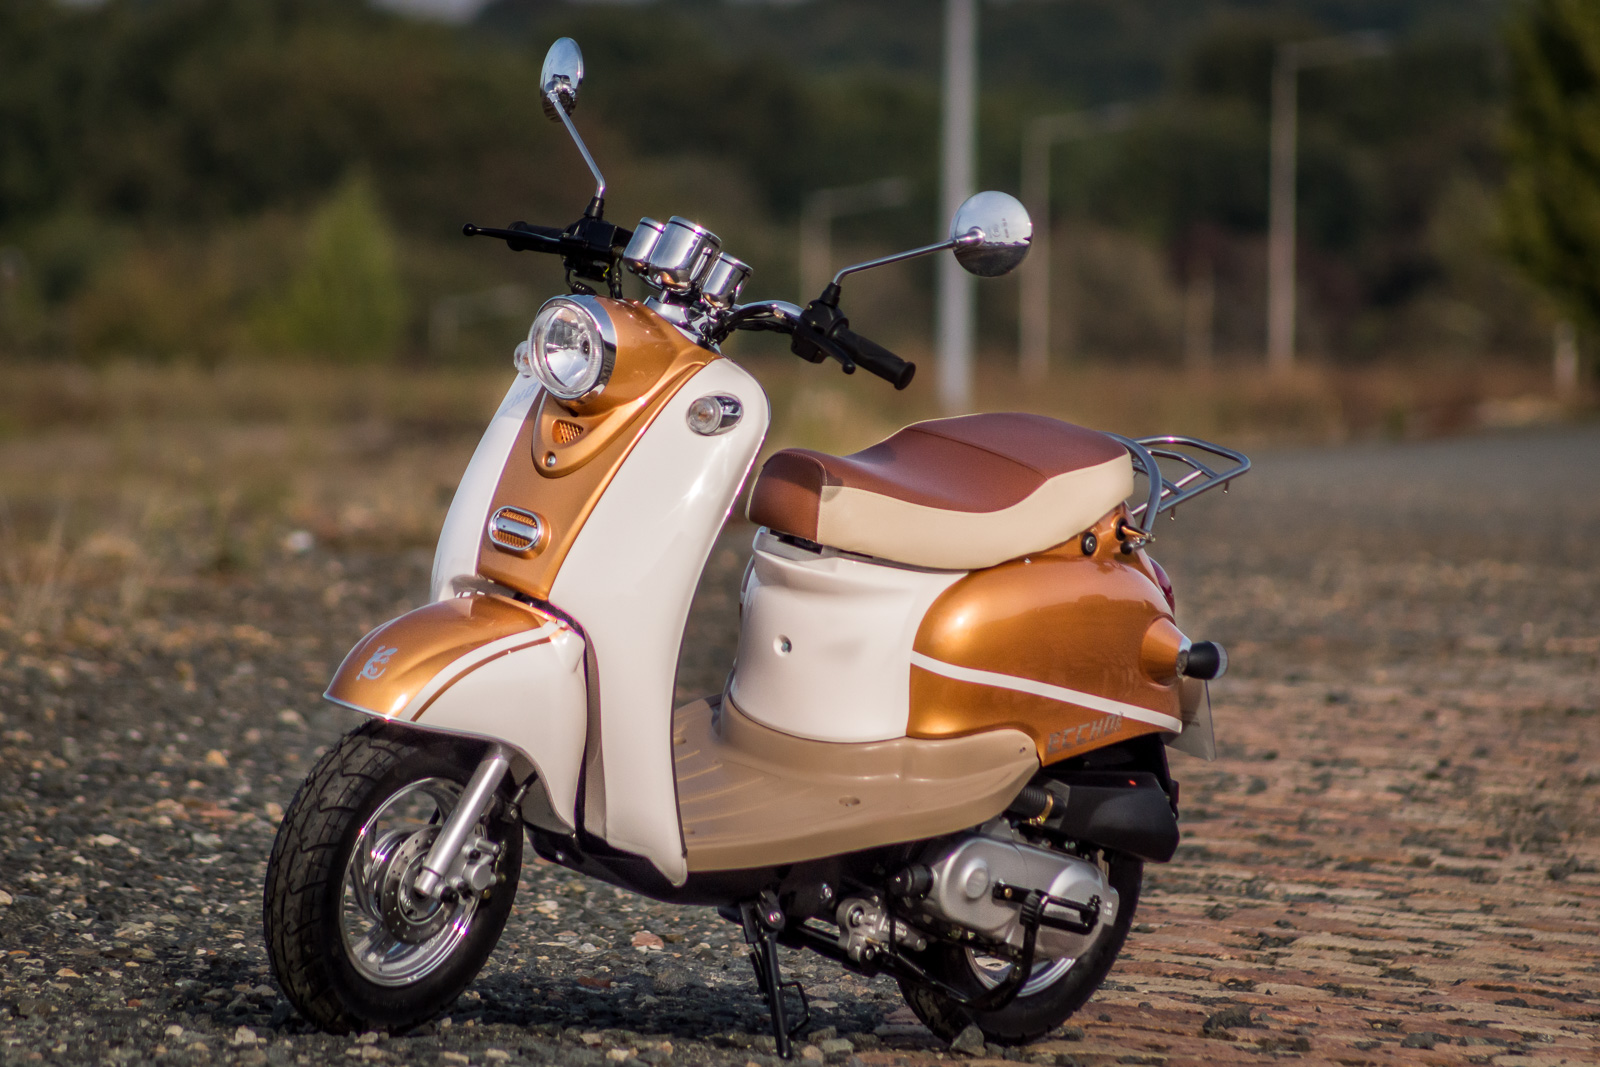 SCOOTER-50-ECCHO-RETRO-GOLDER-09